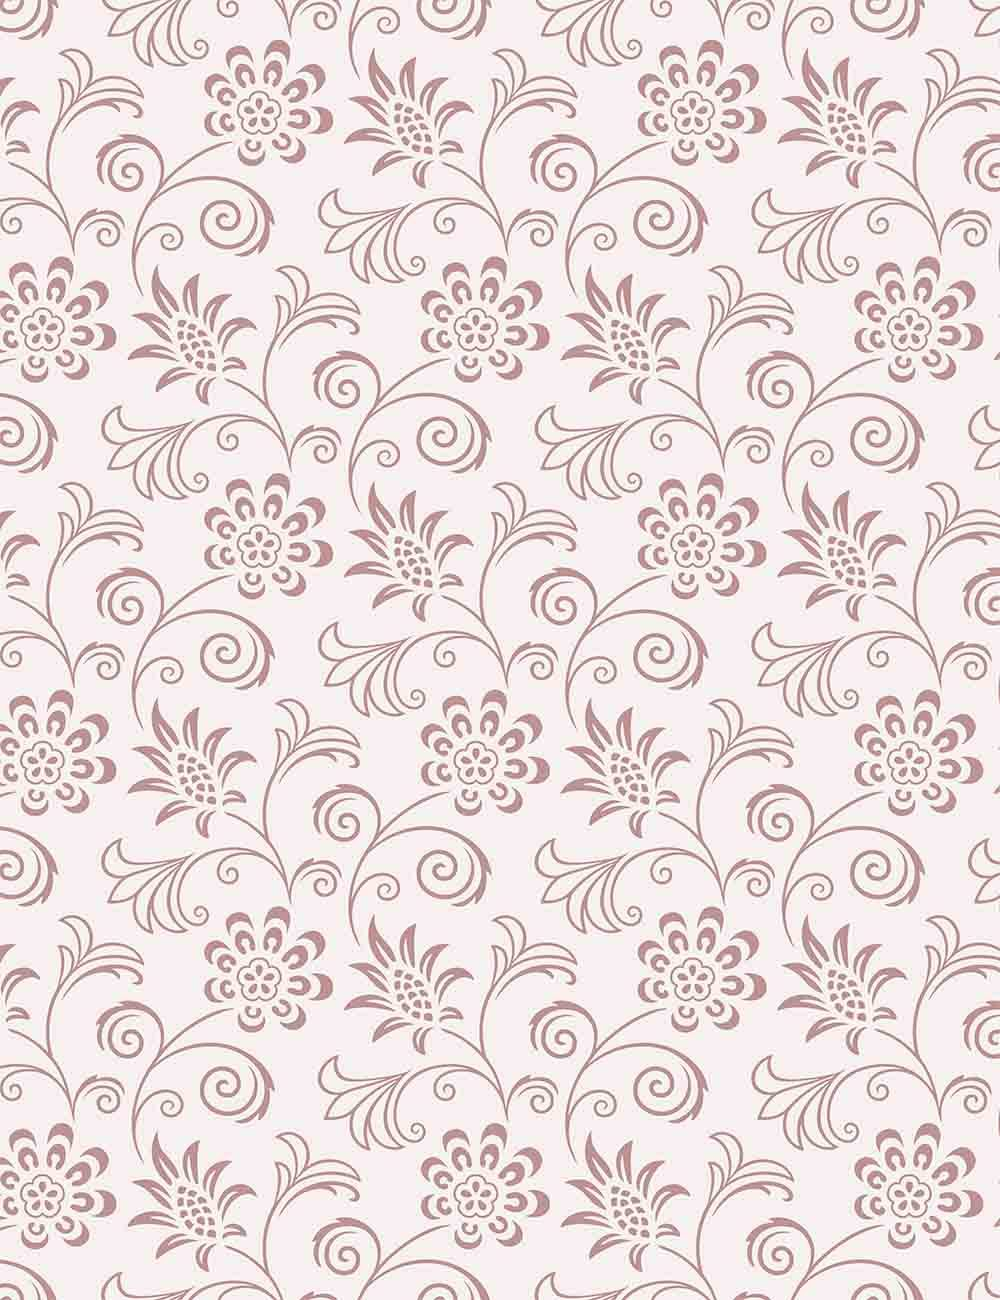 Damask Light Pink Flower Painted Backdrop For Photography - Shop Backdrop